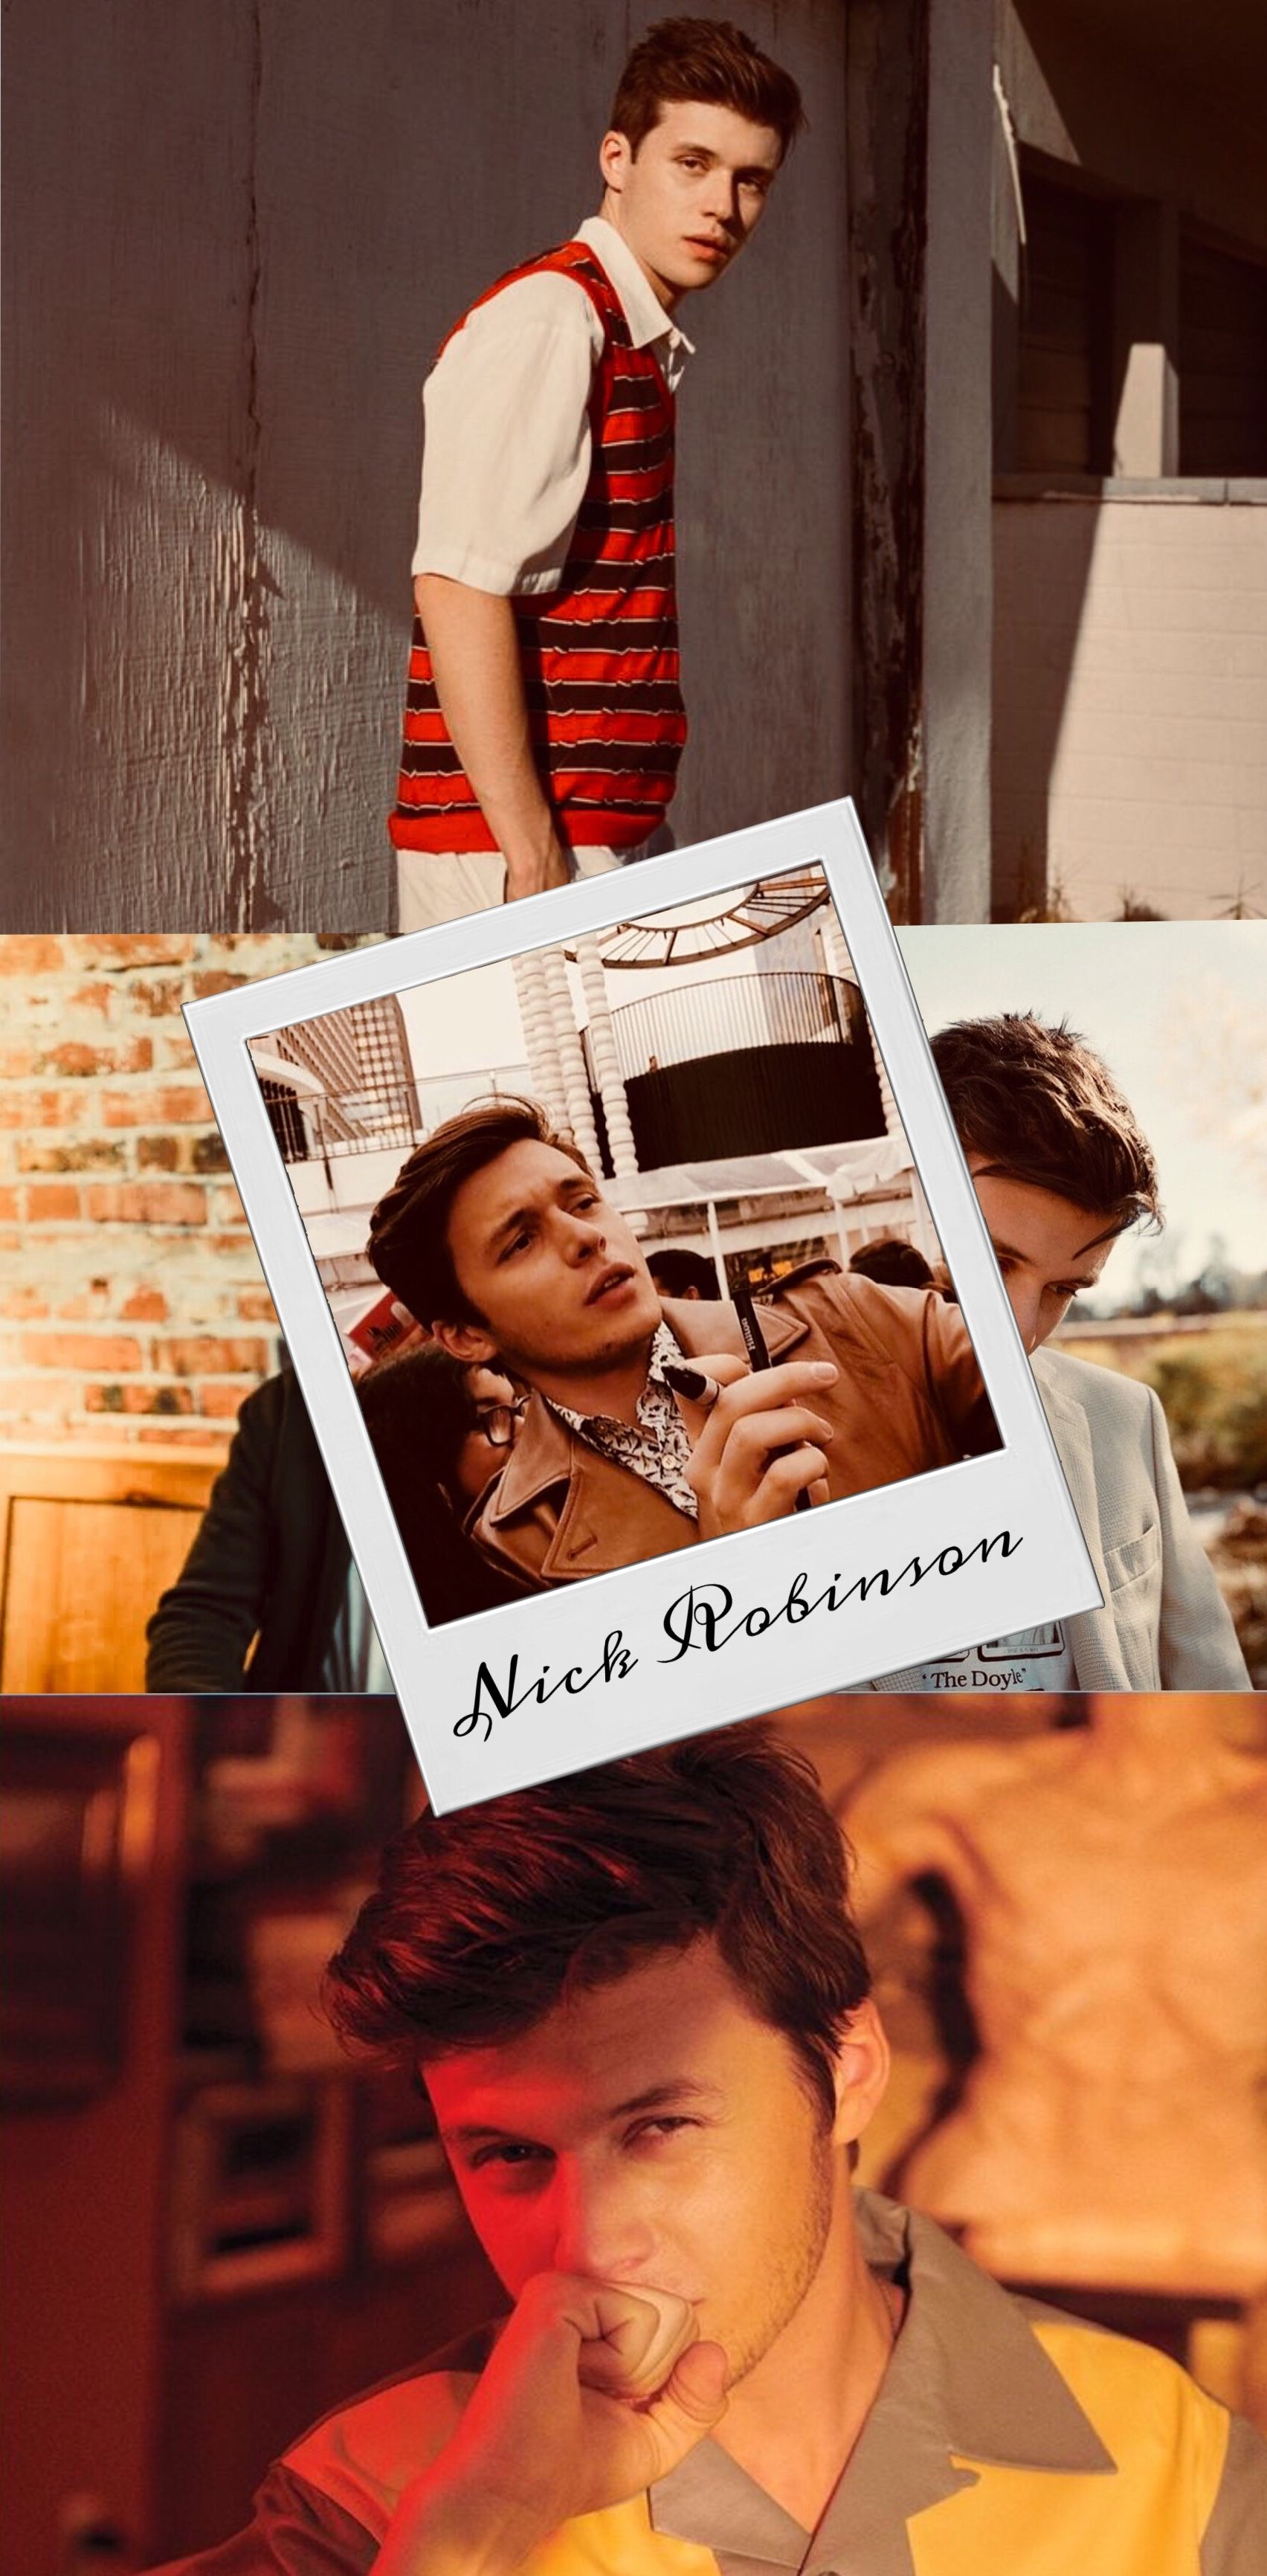 Nick Robinson Wallpaper Nick Robinson Bombones